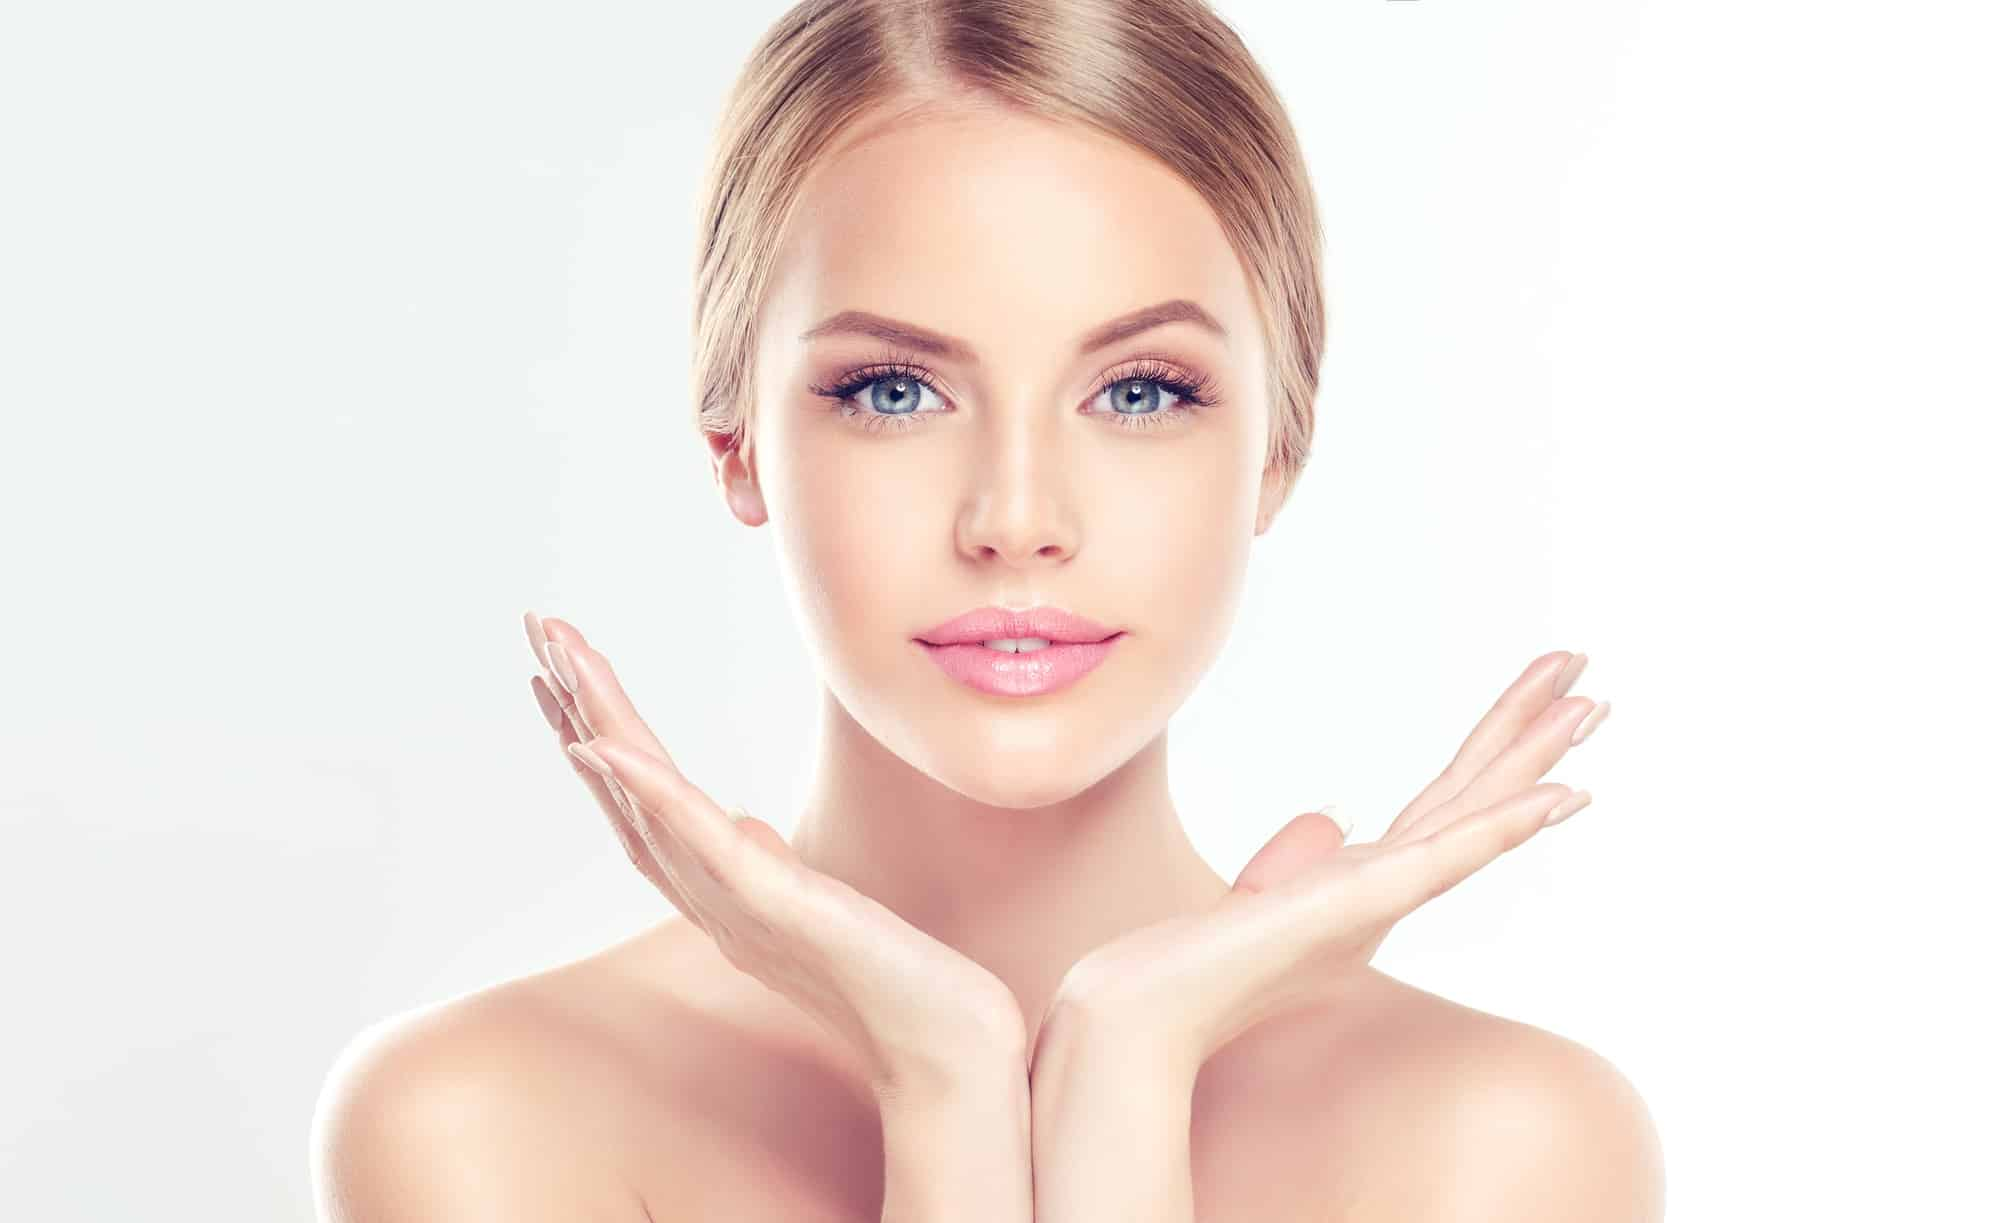 Wrinkles at 30? Don't Freak Out! How Facial Injections Can Prevent Signs of Ageing